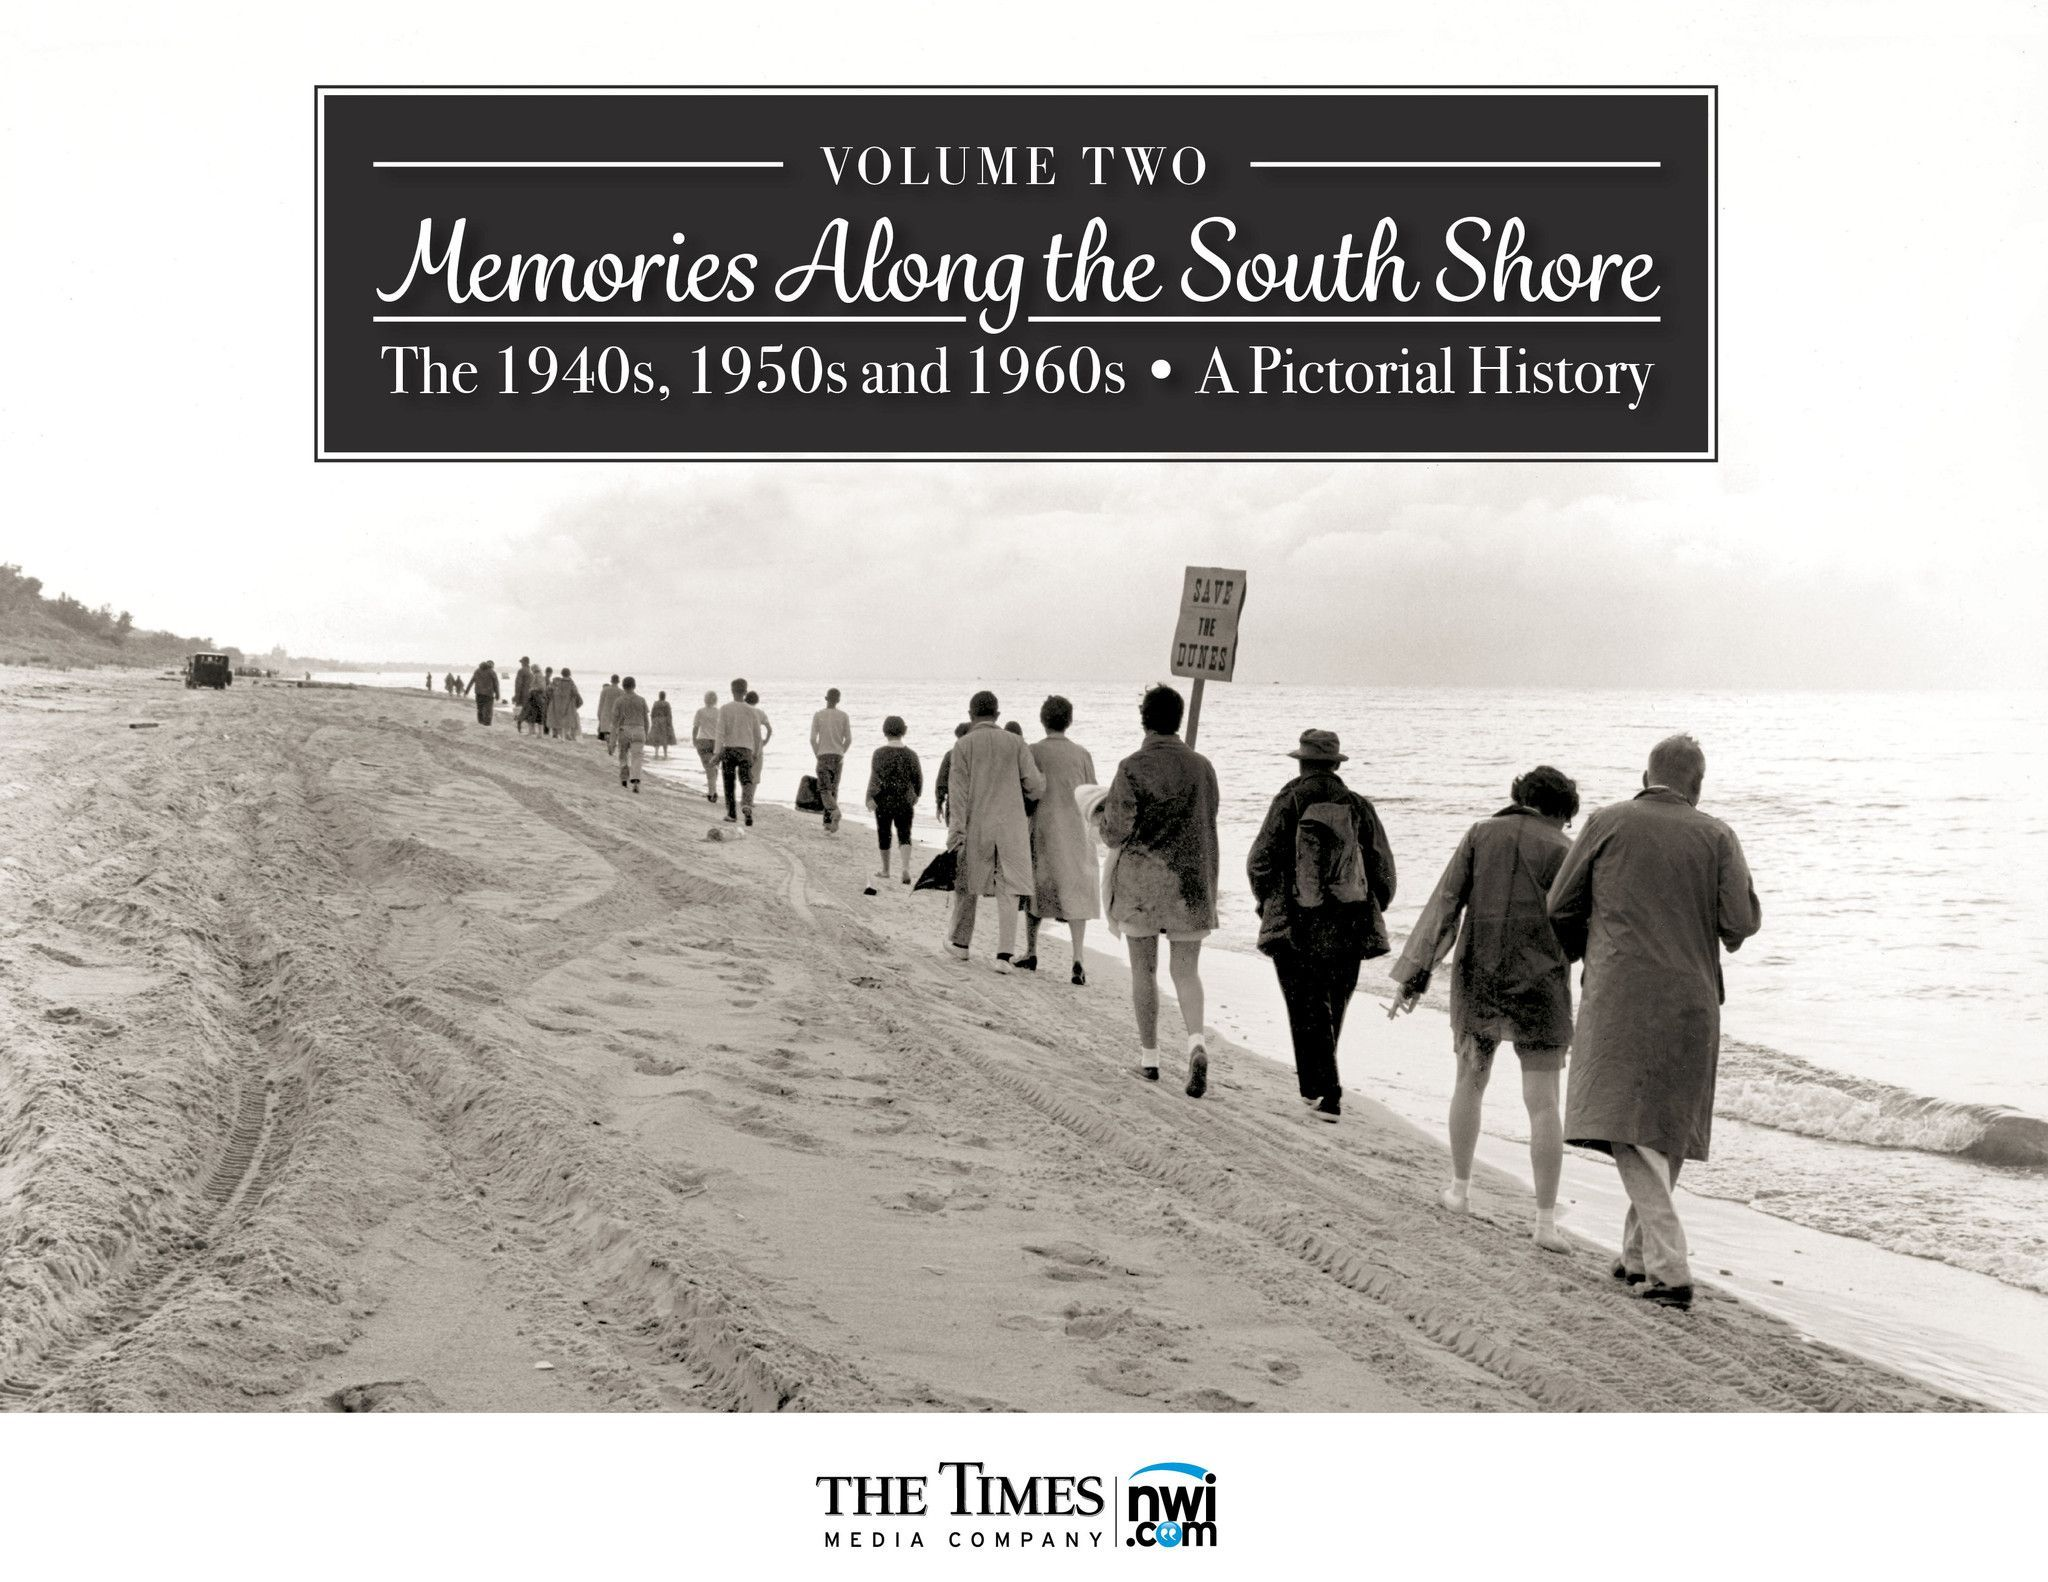 Volume II Memories Along the South Shore The 1940s 1950s and